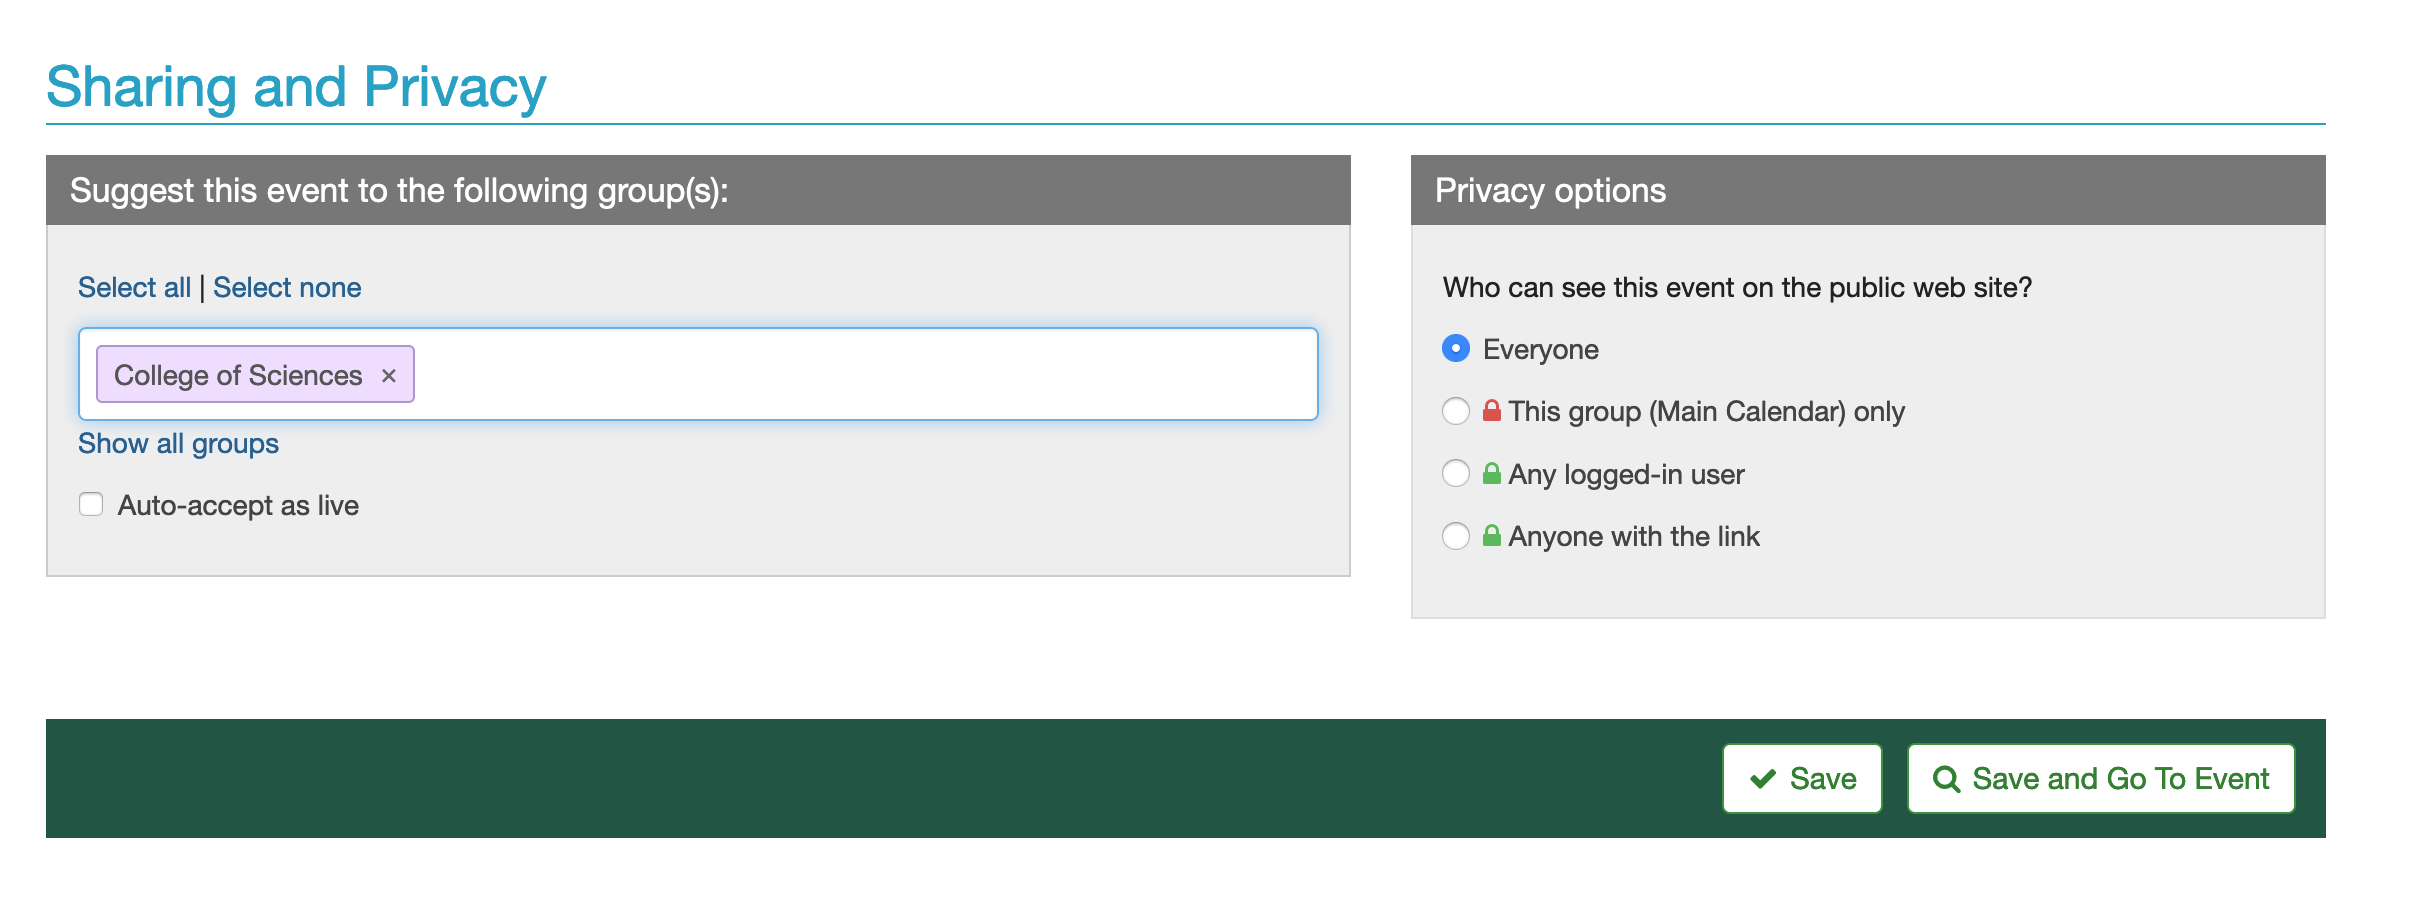 screen shot of sharing and privacy section